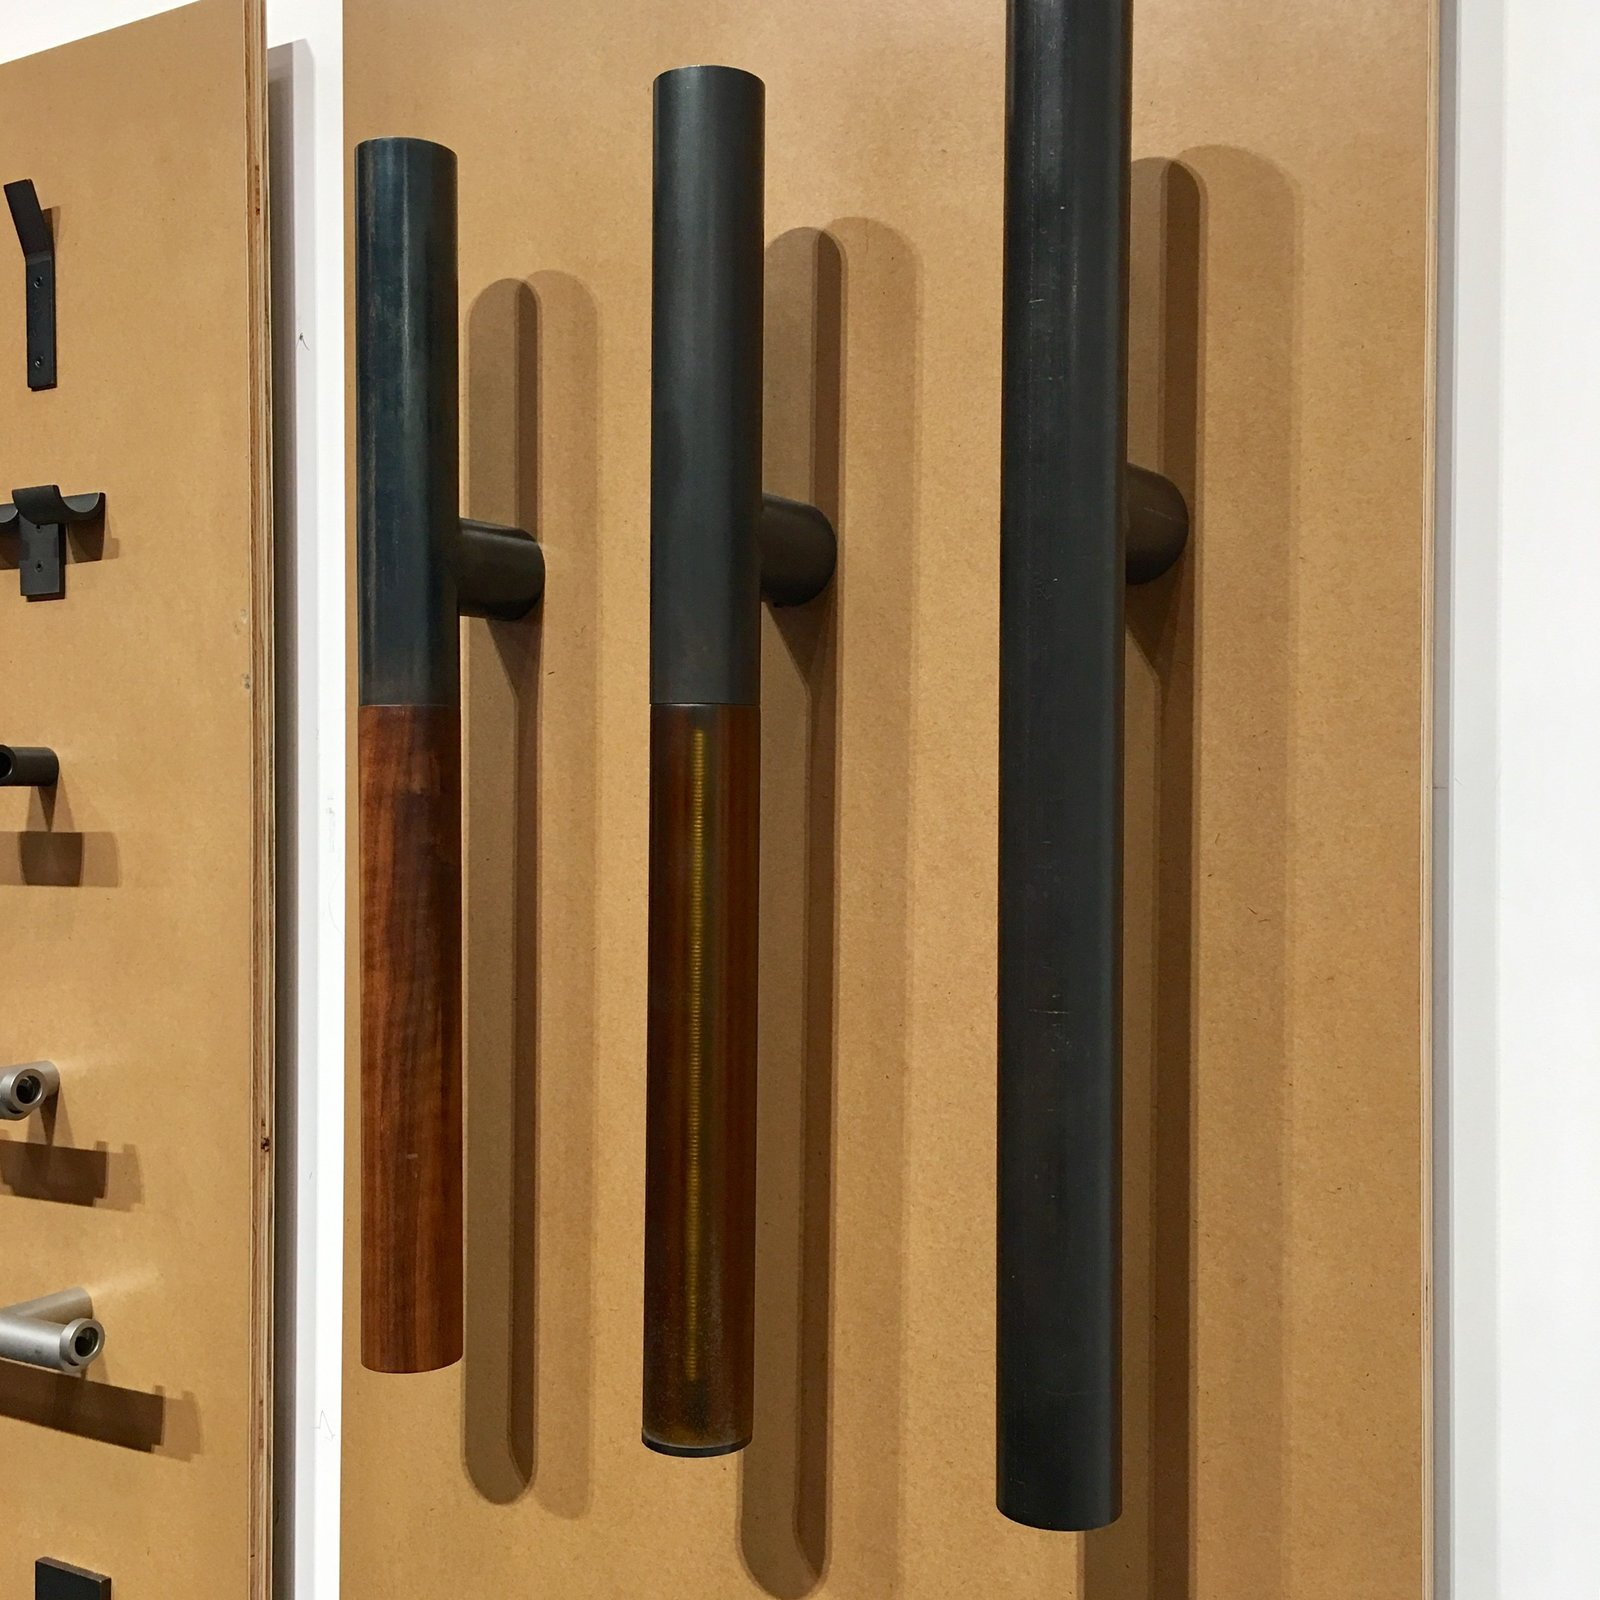 12th Avenue Iron debuted the Tom Kundig Collection, a series of steel accessories.